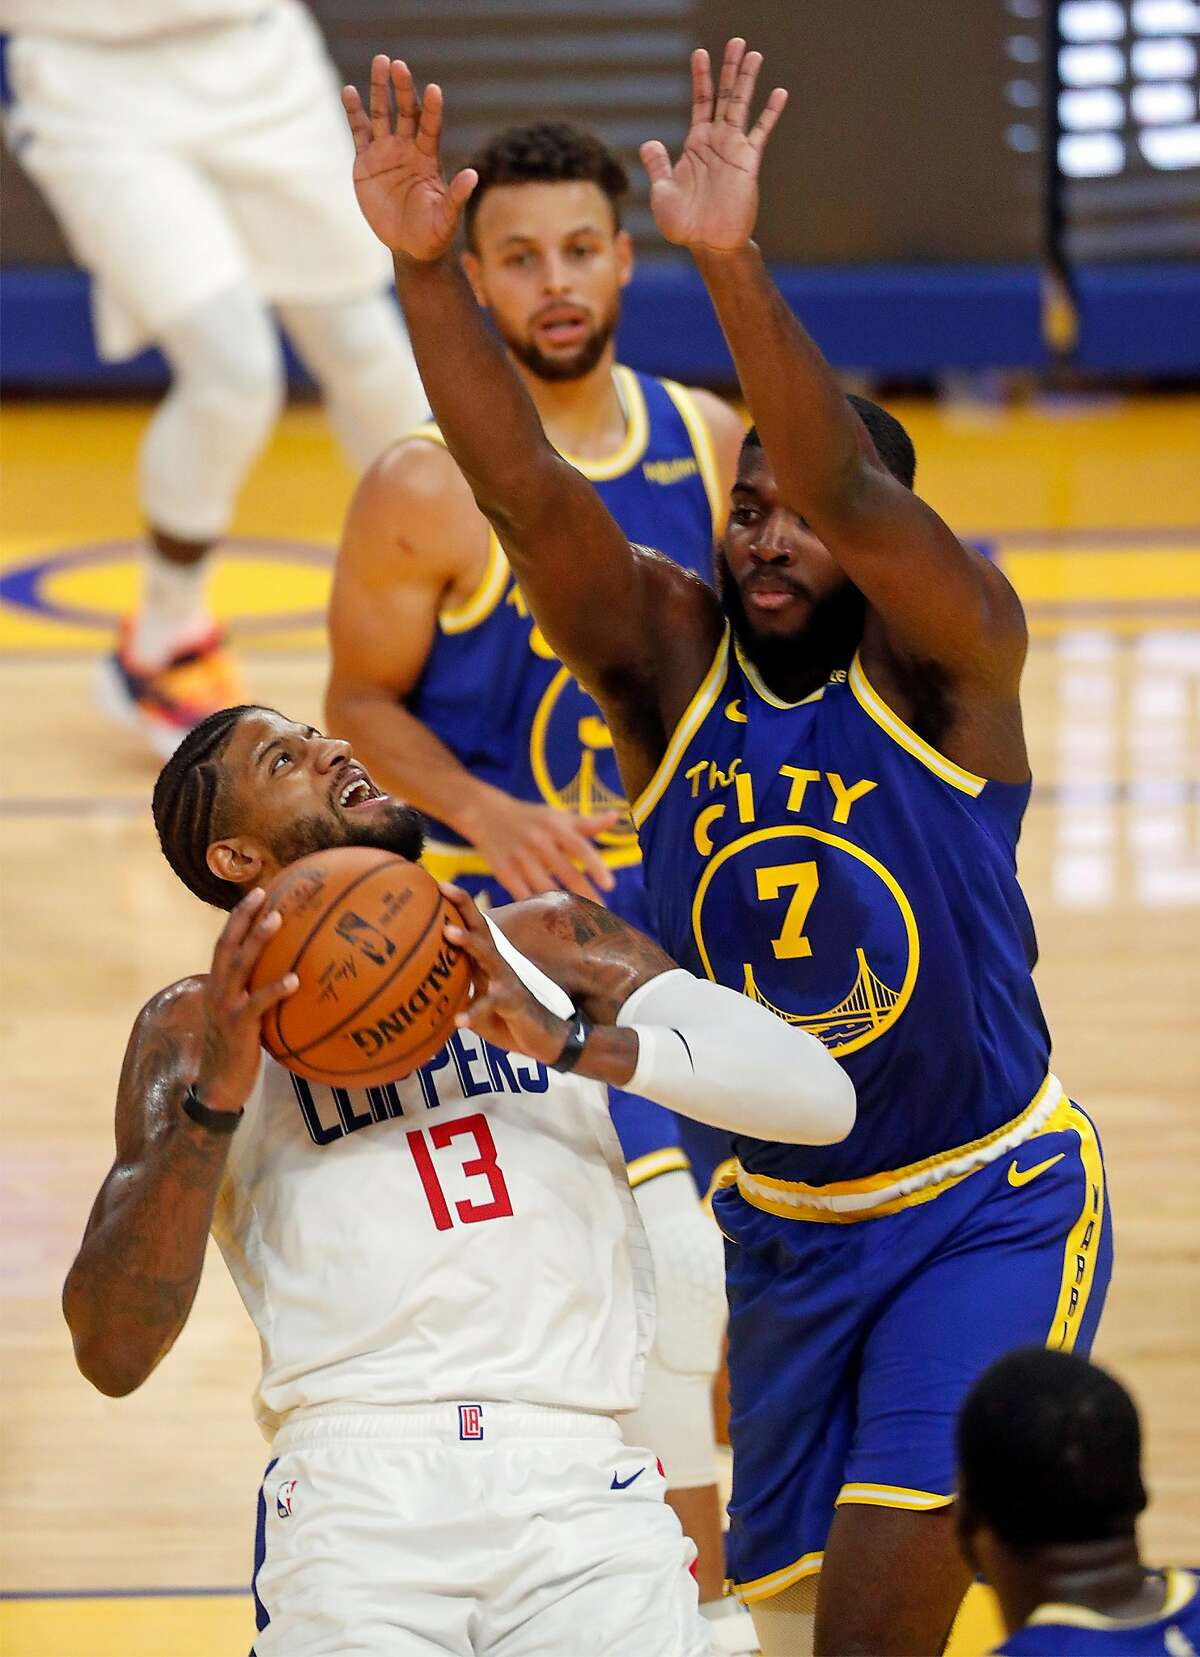 Golden State Warriors' Eric Paschall guards Los Angeles Clippers' Paul George in 2nd quarter during NBA game at Chase Center in San Francisco, Calif., on Wednesday, January 6, 2021.